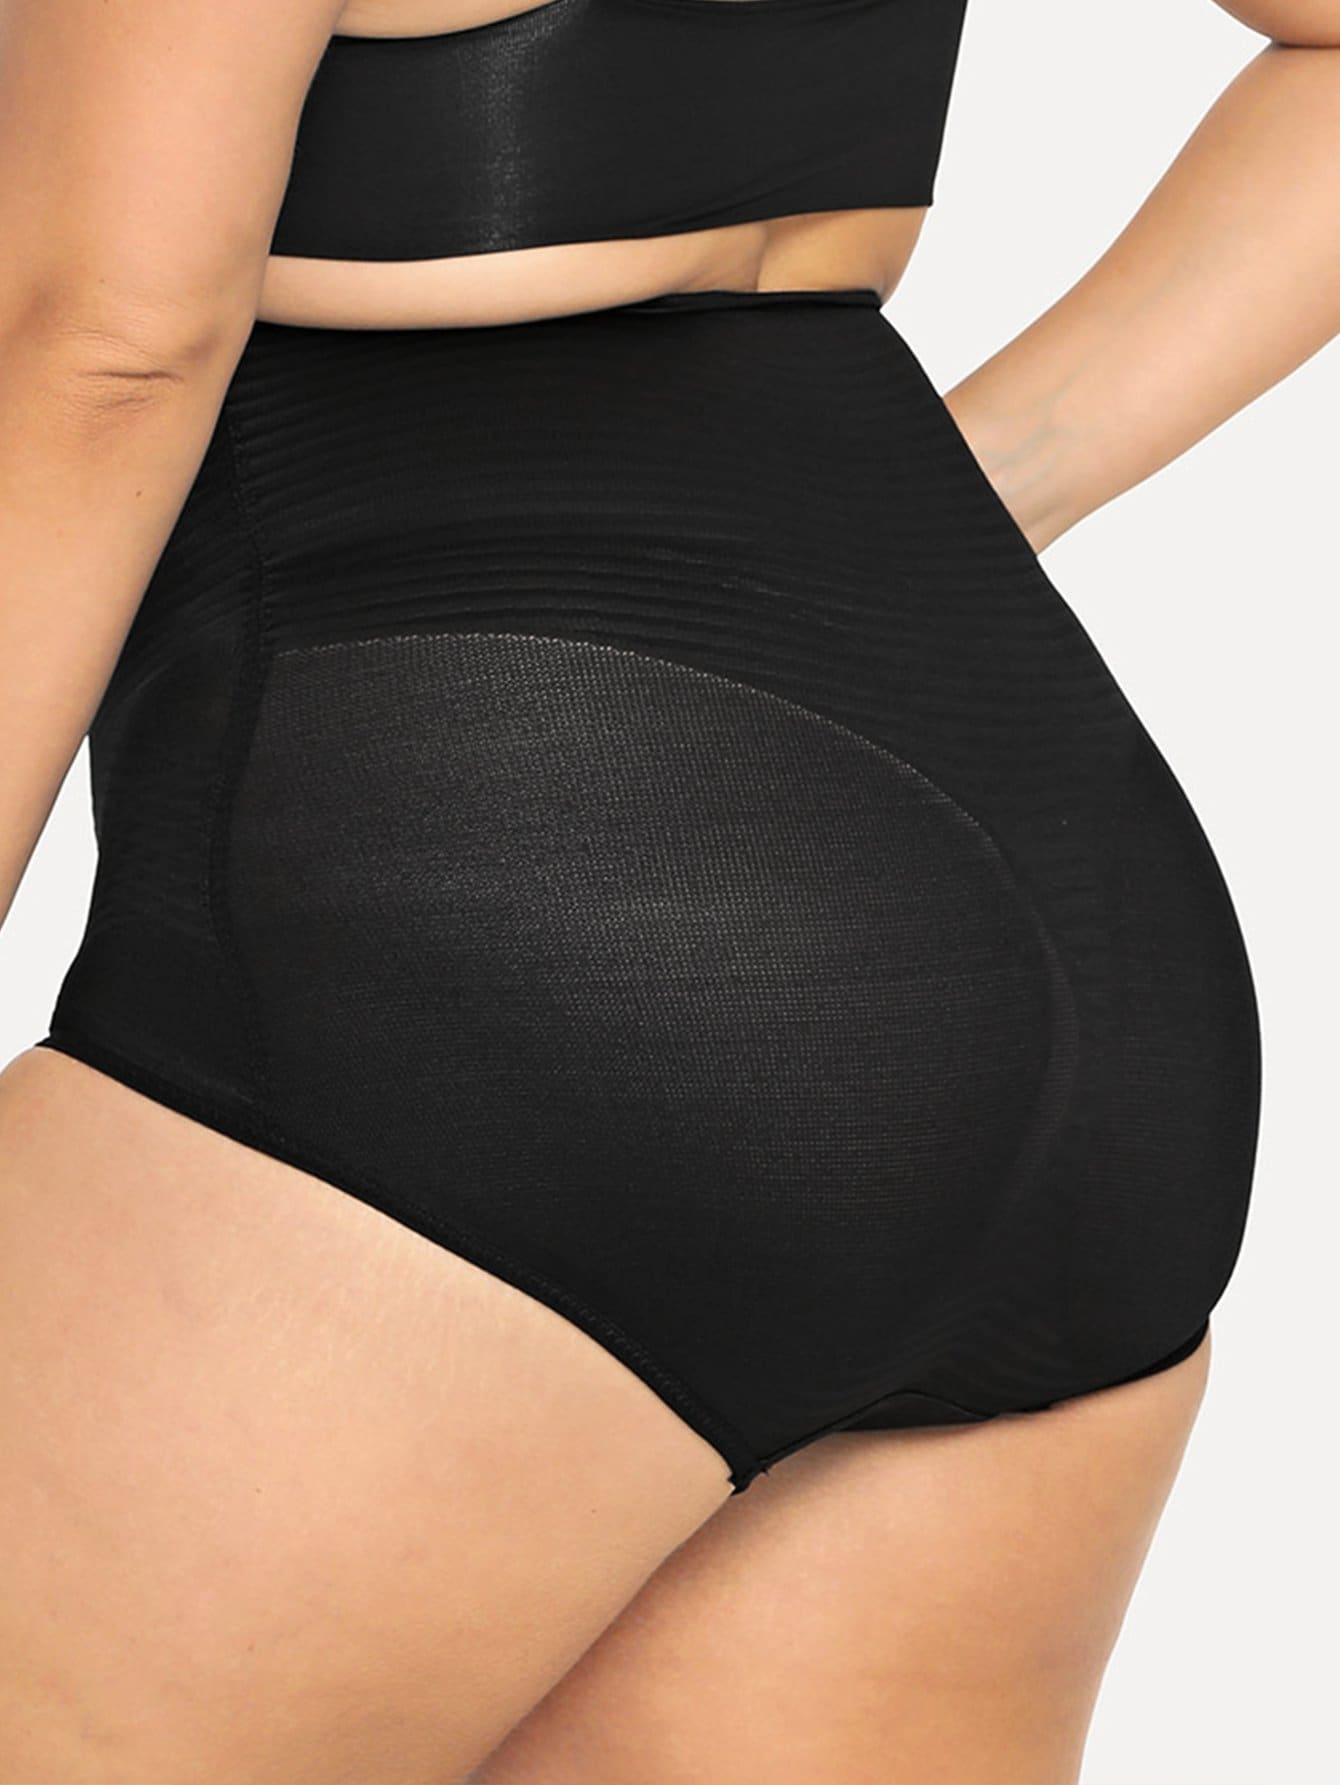 Queen Size Black High waist shapewear panty